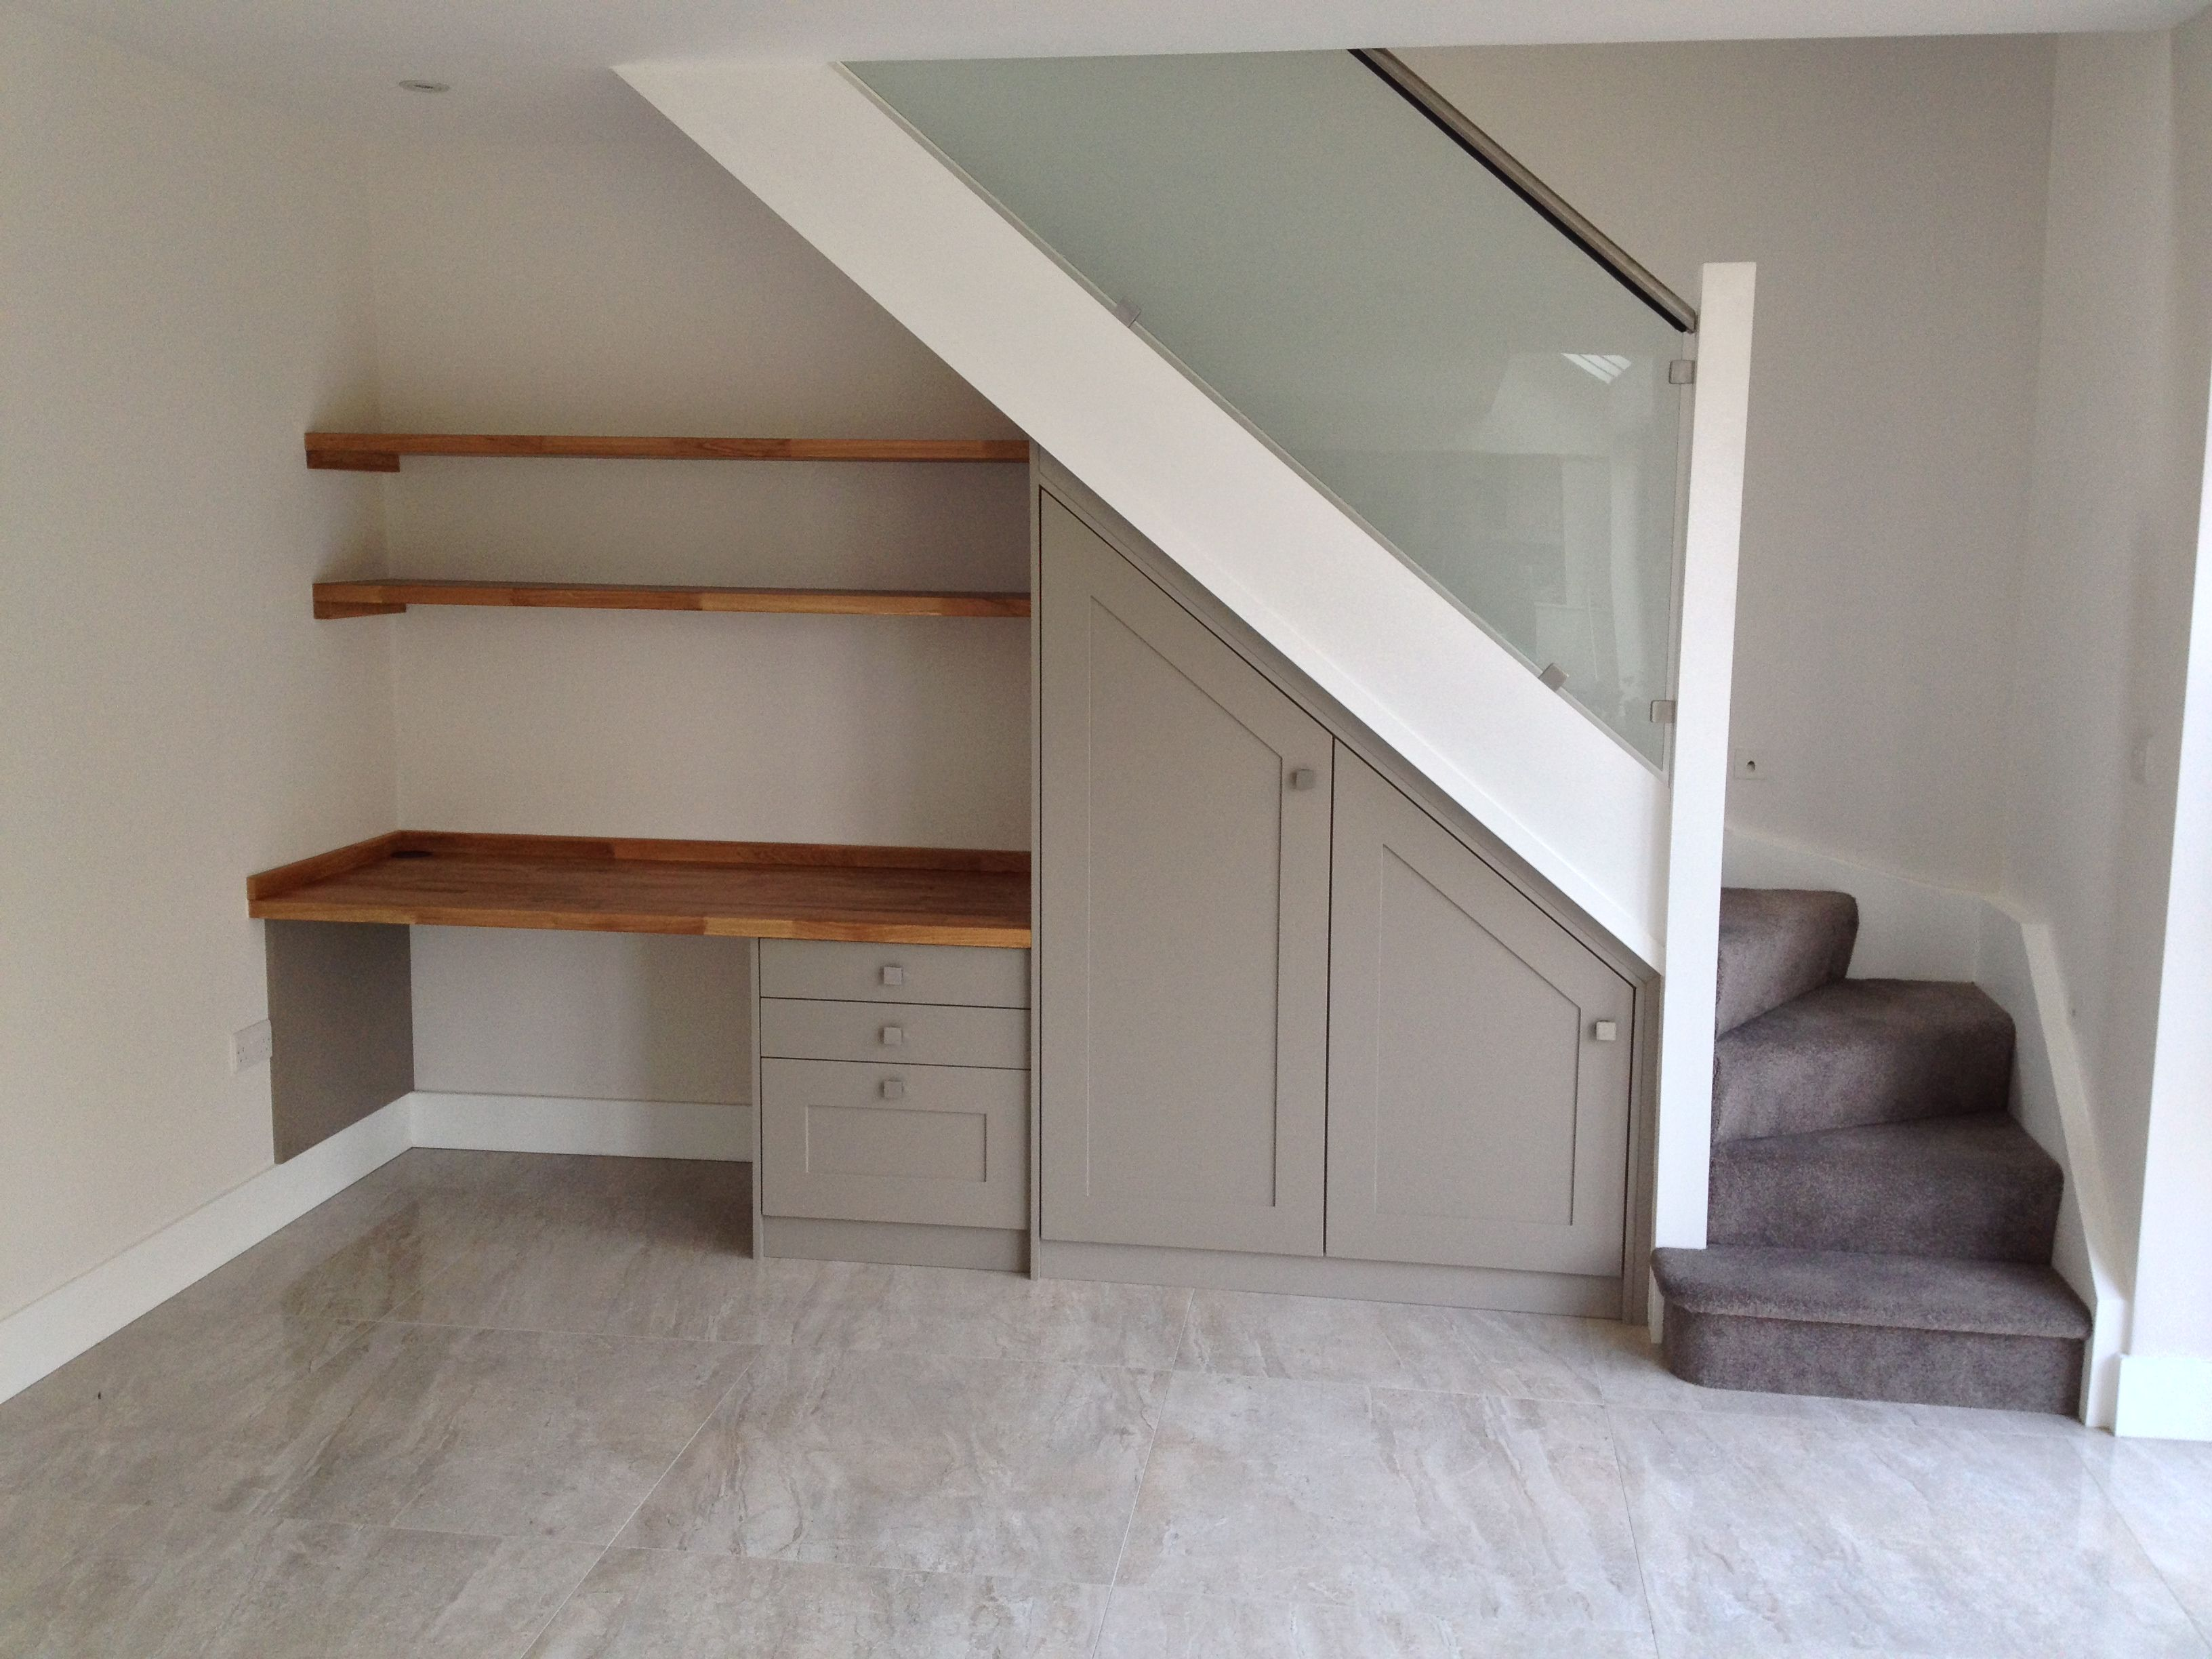 Best Under The Stairs Study Desk Space A Great Use Of Space For A Small Home Study Office Bespoke 400 x 300